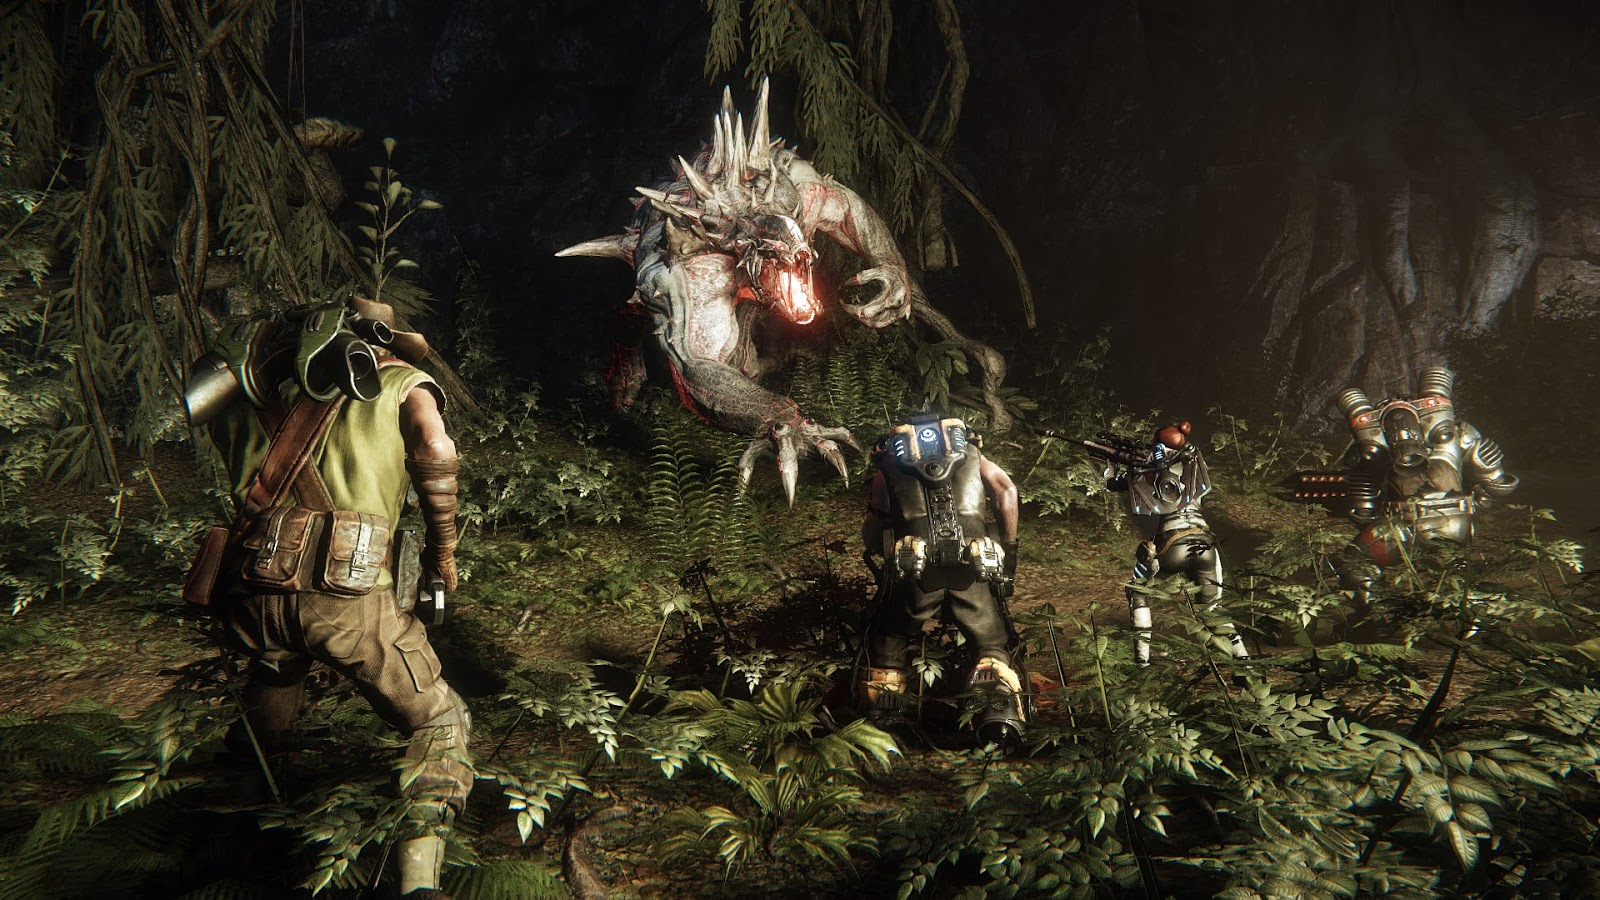 Preview: Team Based Co-Op To One Man Destruction In Evolve - weknowgamers